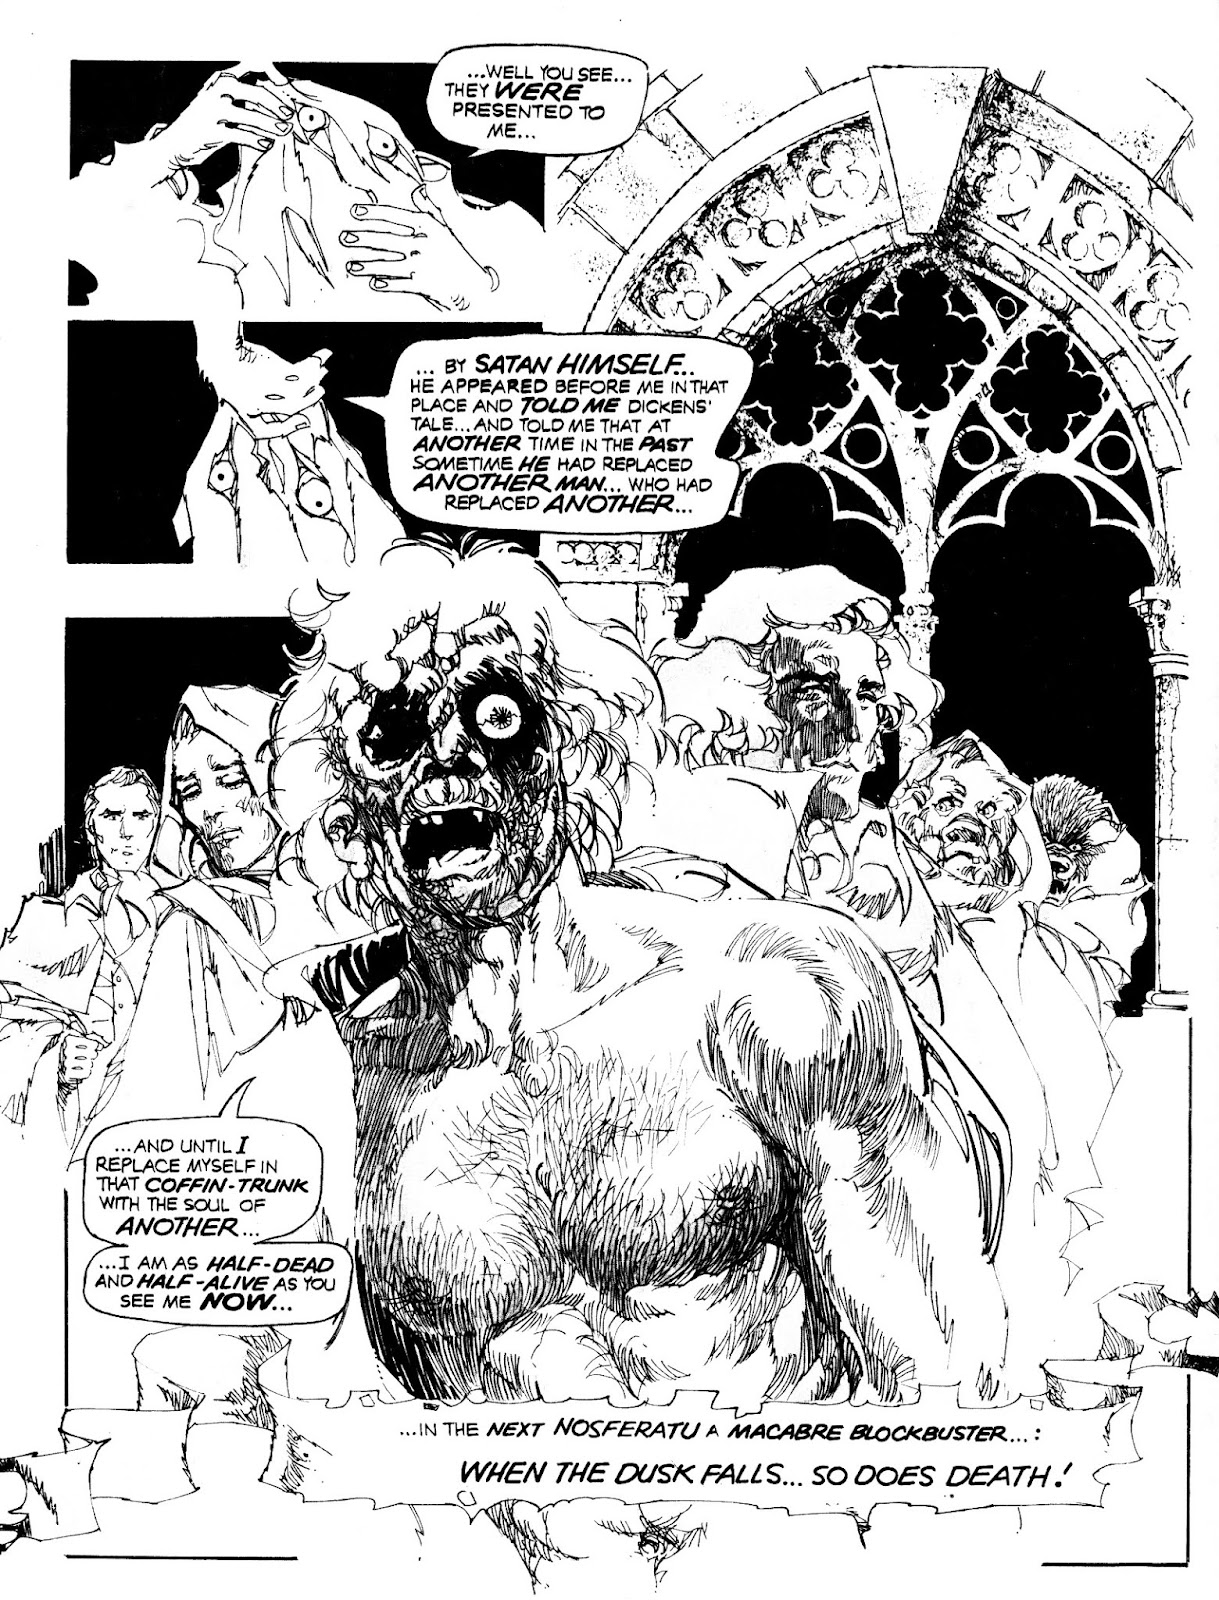 Scream (1973) issue 3 - Page 66